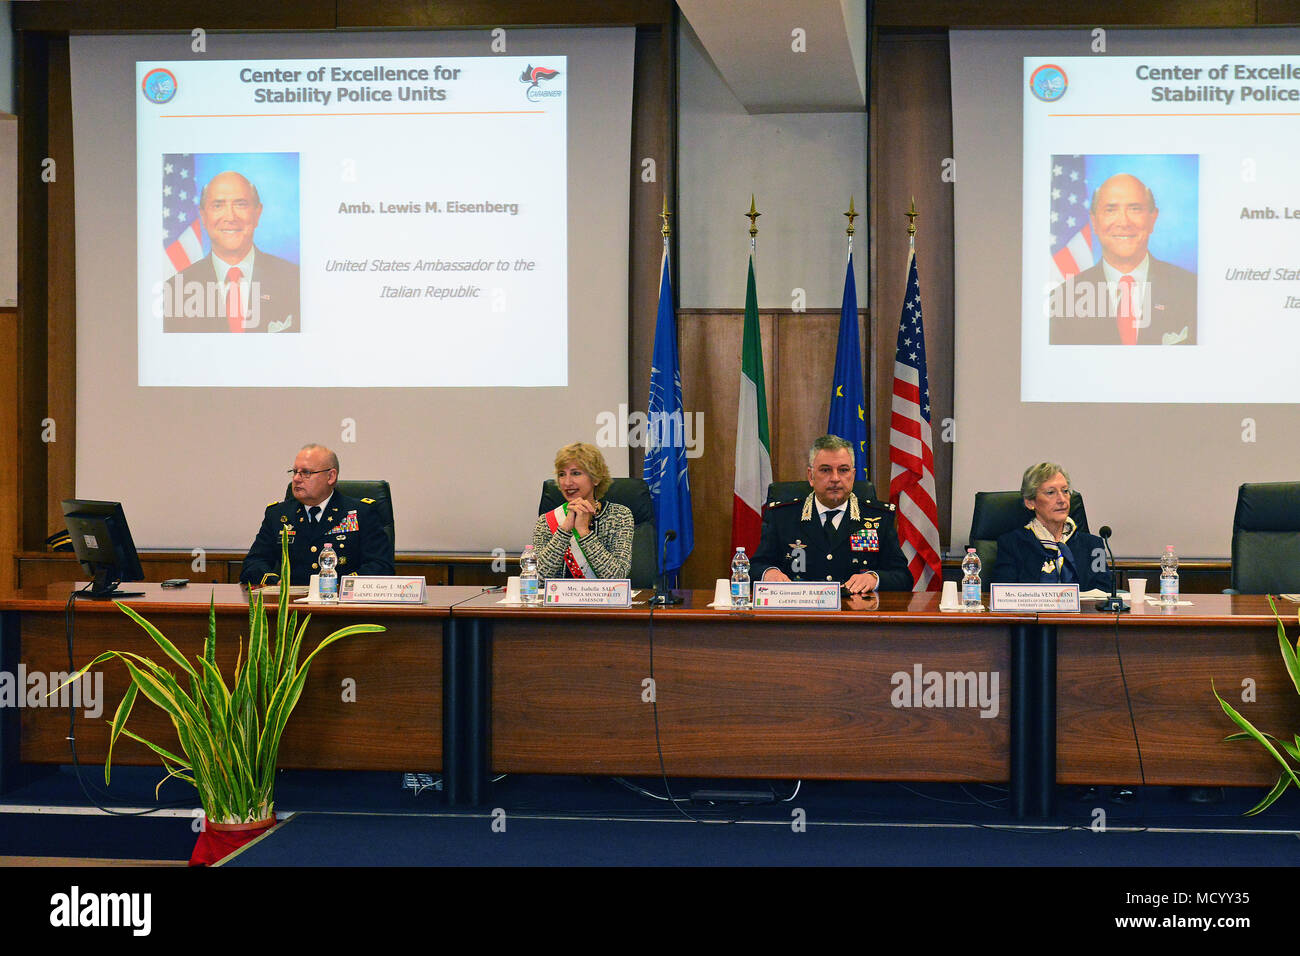 A video statement by Ambassador Lewis M. Eisenberg, United States Ambassador to the Italian Republic, plays on a projector screen for attendees during the opening ceremony of the 8th Gender Protection in Peace Operations Course at the Center of Excellence for Stability Police Units (CoESPU) in Vicenza, Italy, Mar. 8, 2018. The event brought together military and civic leaders from the local community to celebrate International Women's Day. (U.S. Army Photo by Paolo Bovo) Stock Photo